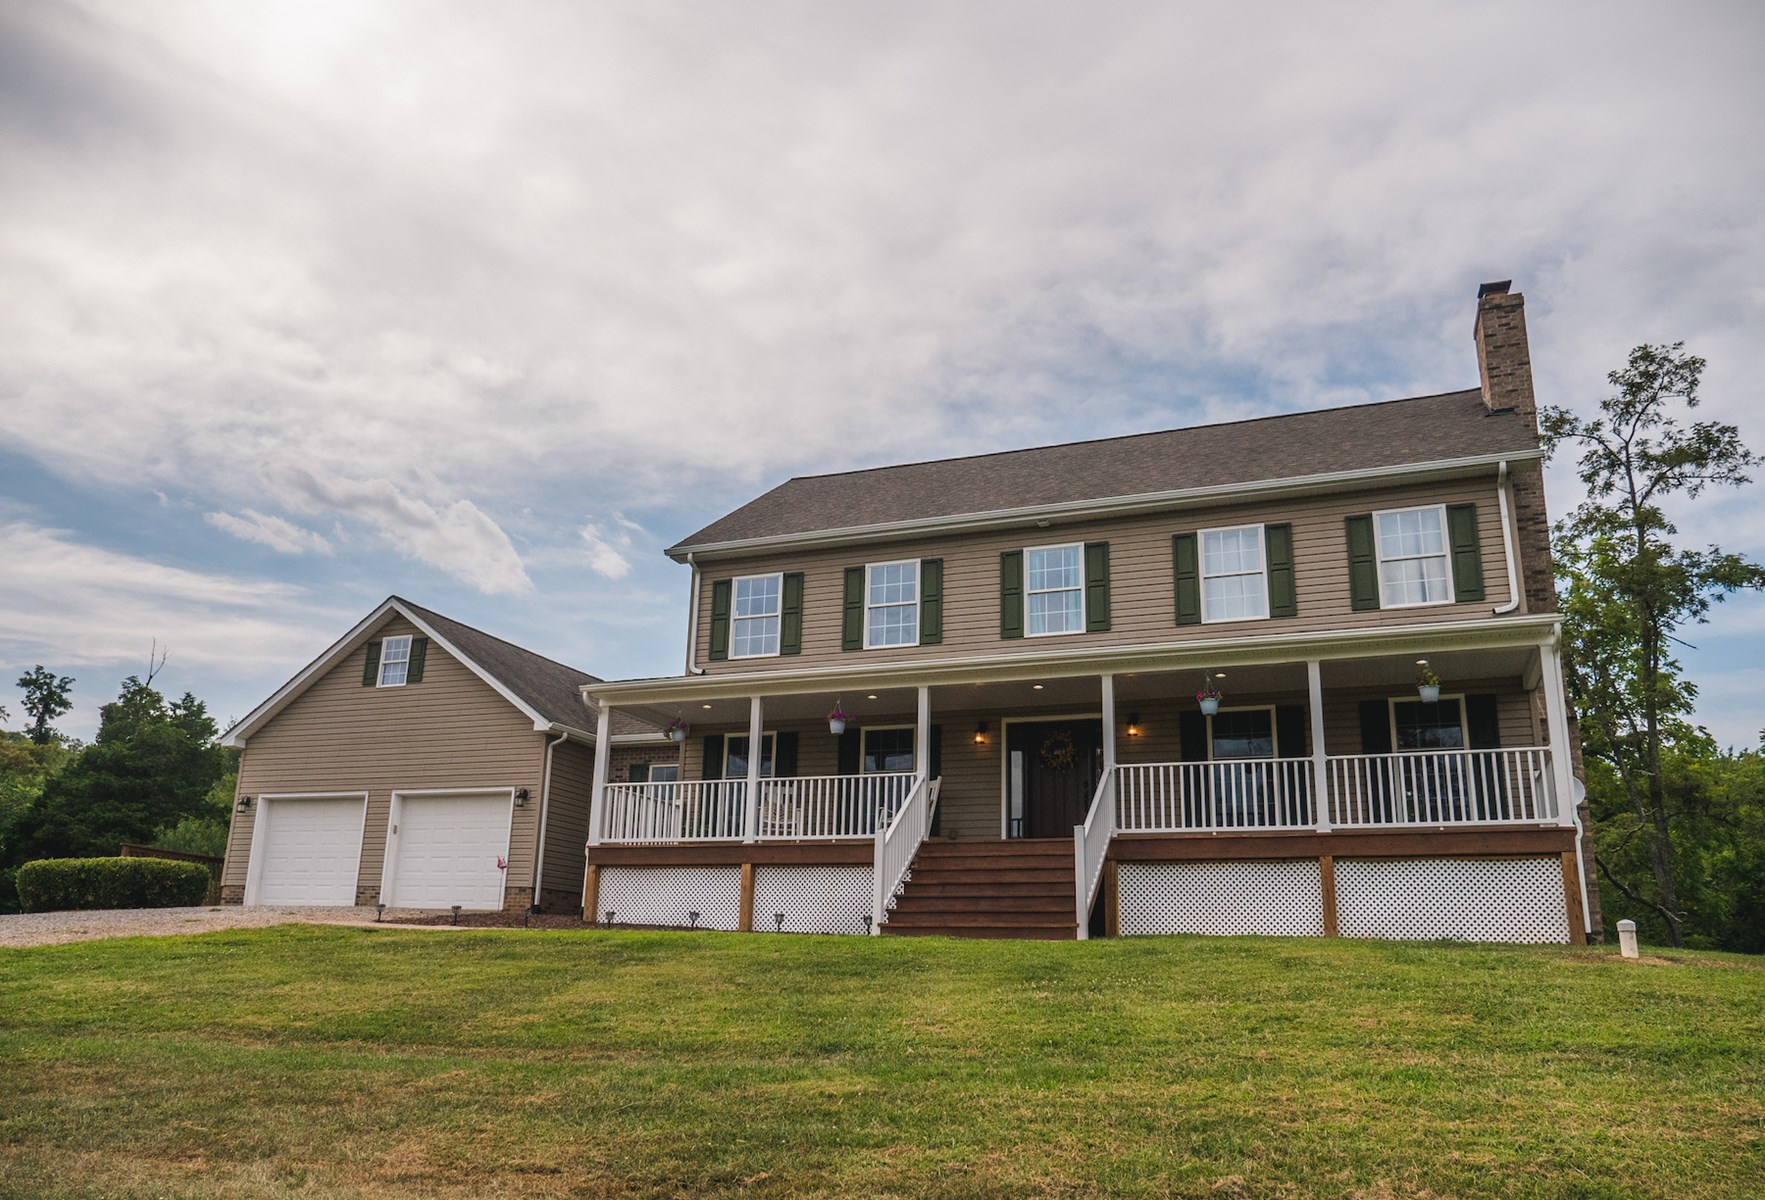 Breathtaking Country Home for Sale in Riner VA!